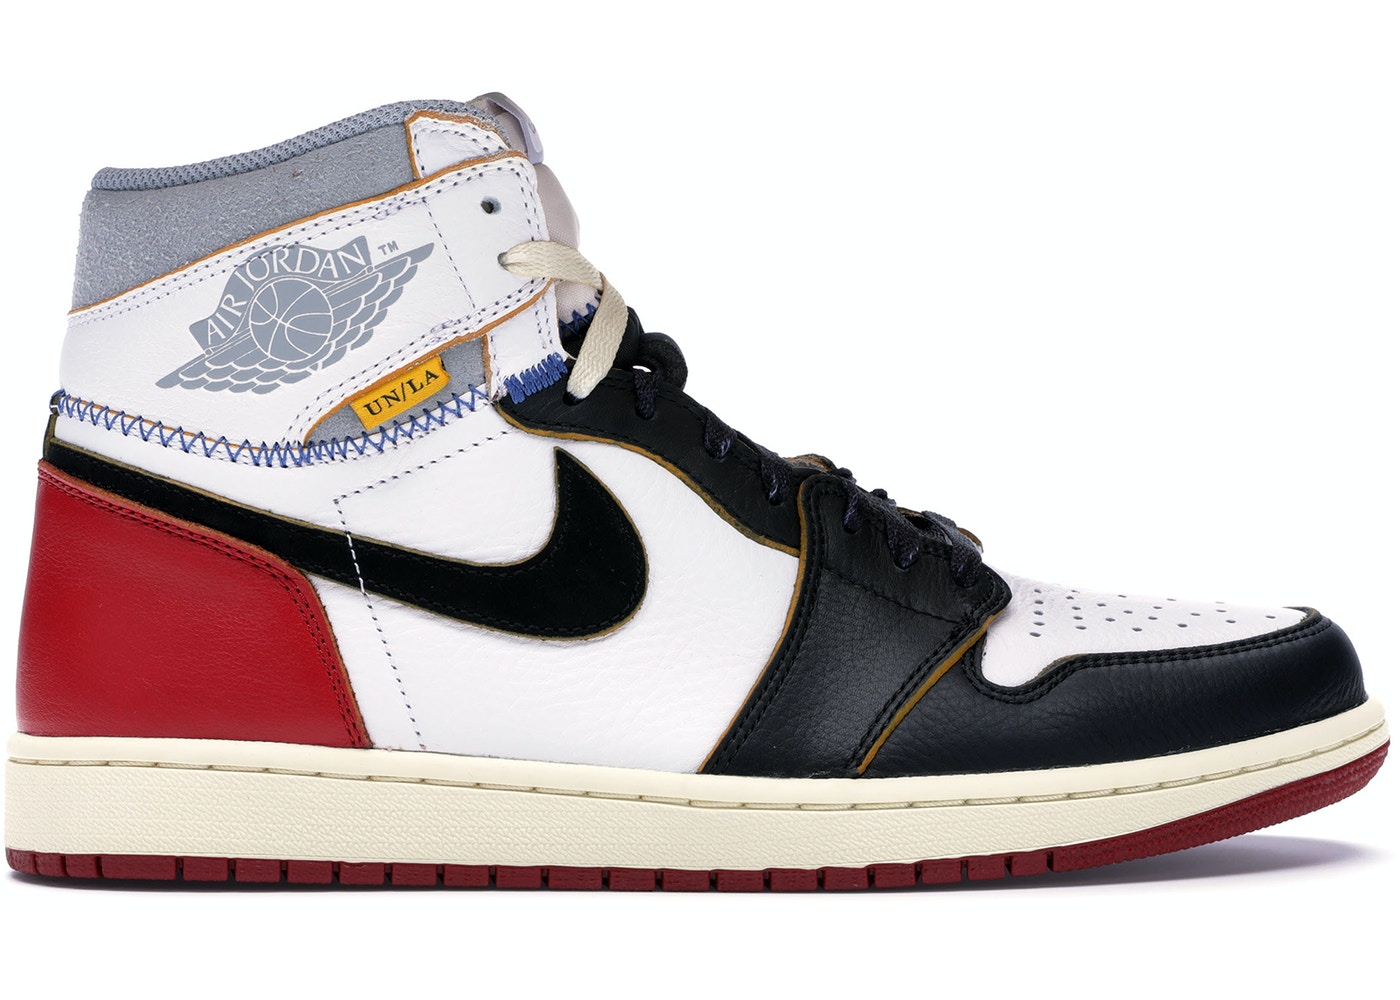 37936d5bc54 Jordan 1 Retro High Union Los Angeles Black Toe - BV1300-106